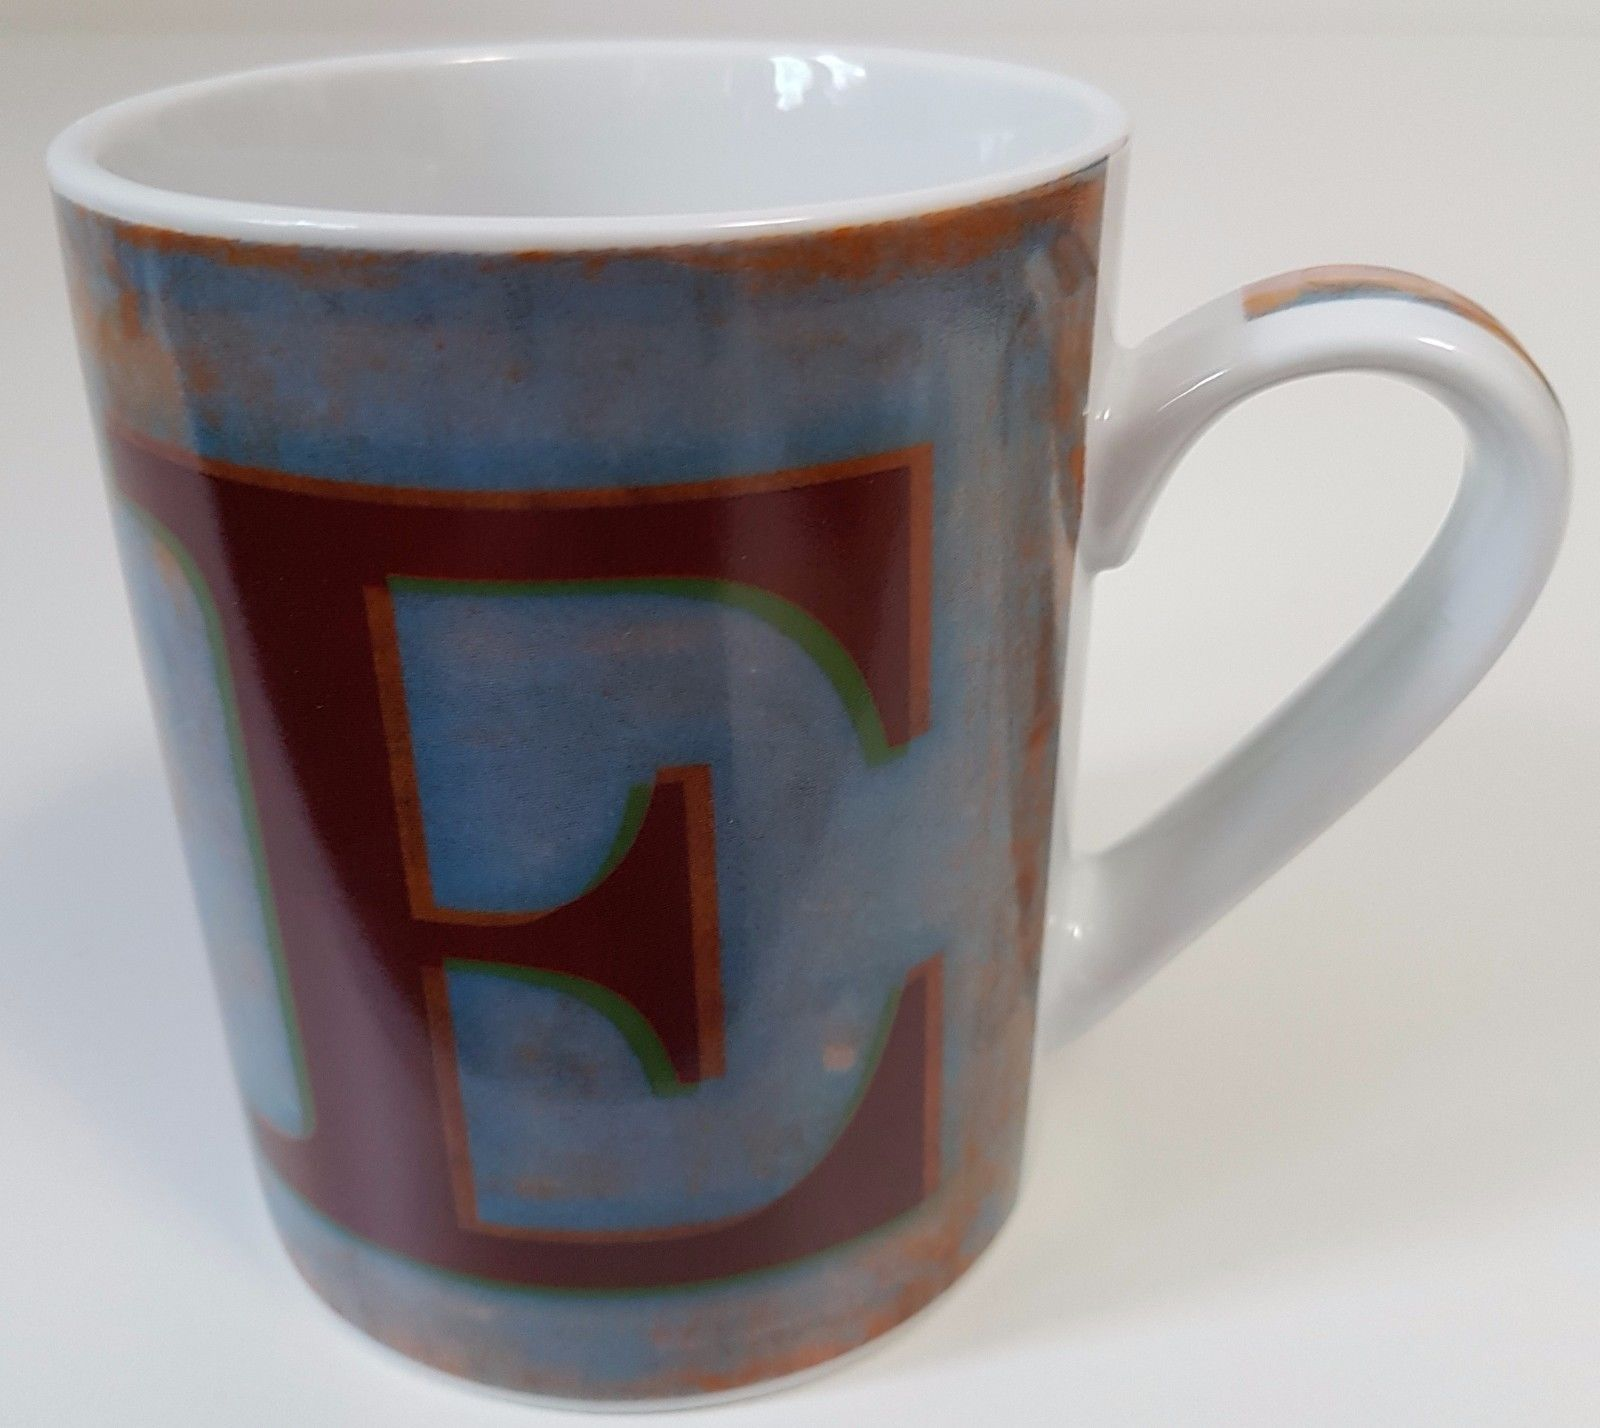 Pier 1 Imports Rustic Rusty Distressed Letter E Coffee Mug Mugs Decorative Accessories Christmas Items